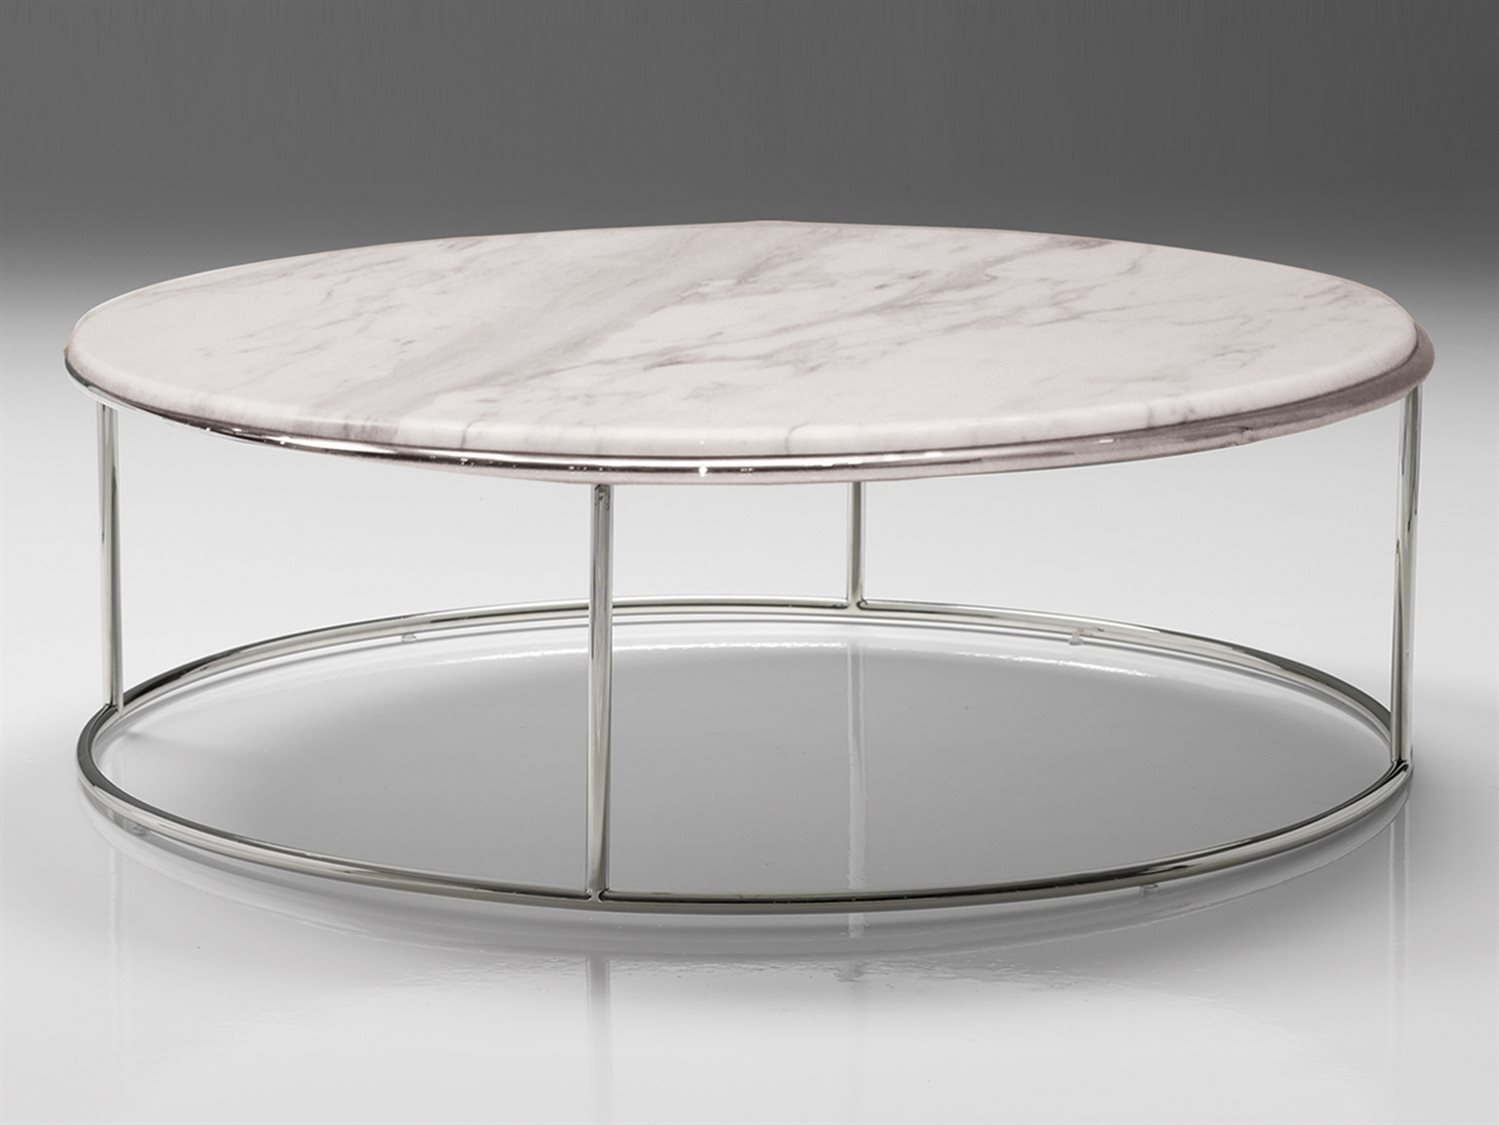 mobital-elysee-39-round-marble-coffee-table-48-round-coffee-table-48-large-square-coffee-table (Image 6 of 10)